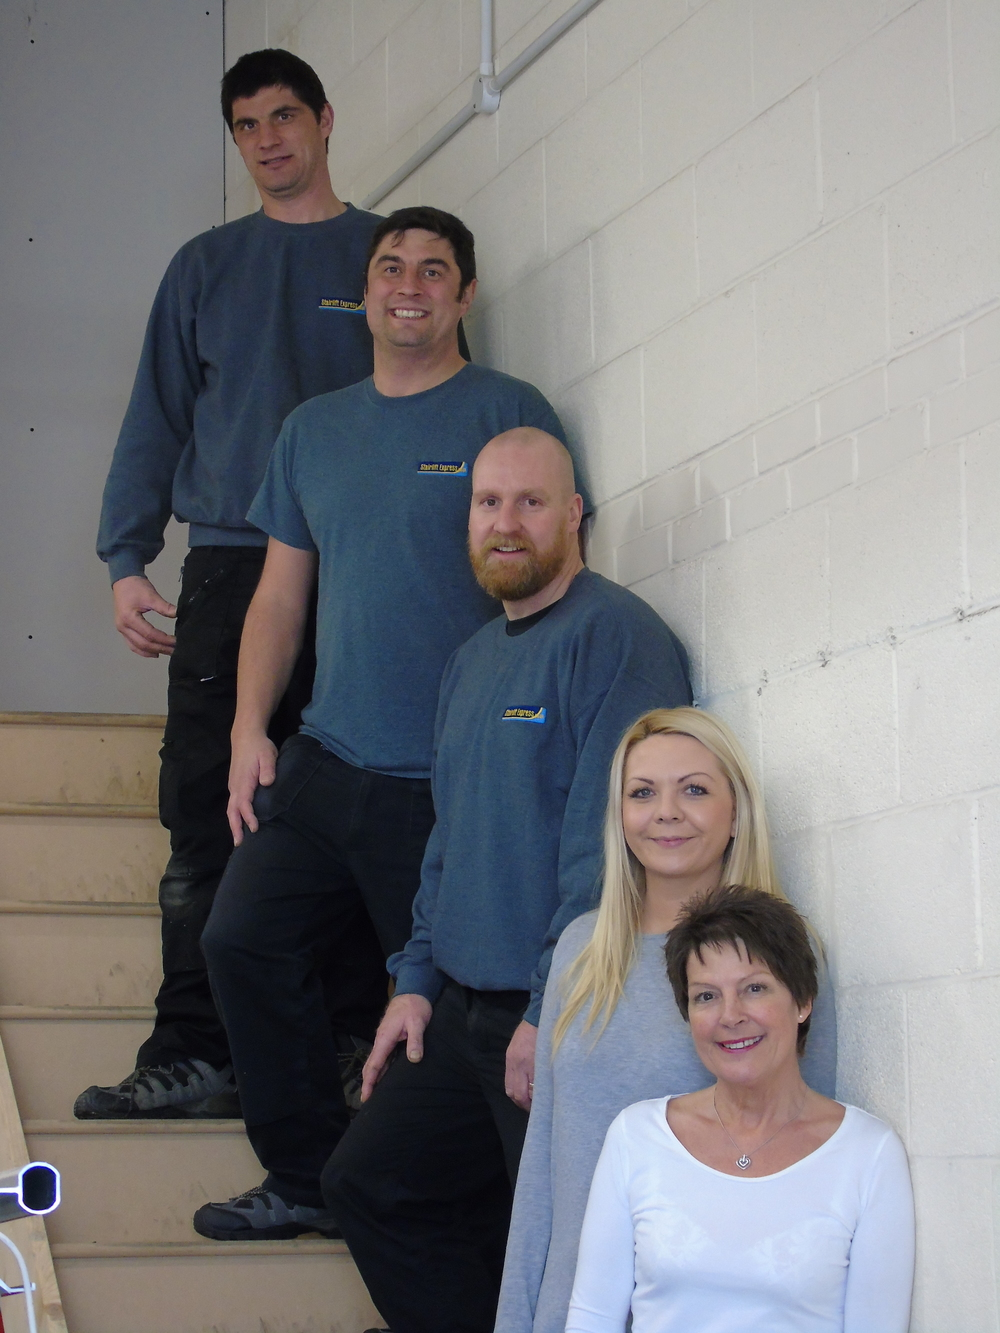 team on stairs close up.JPG